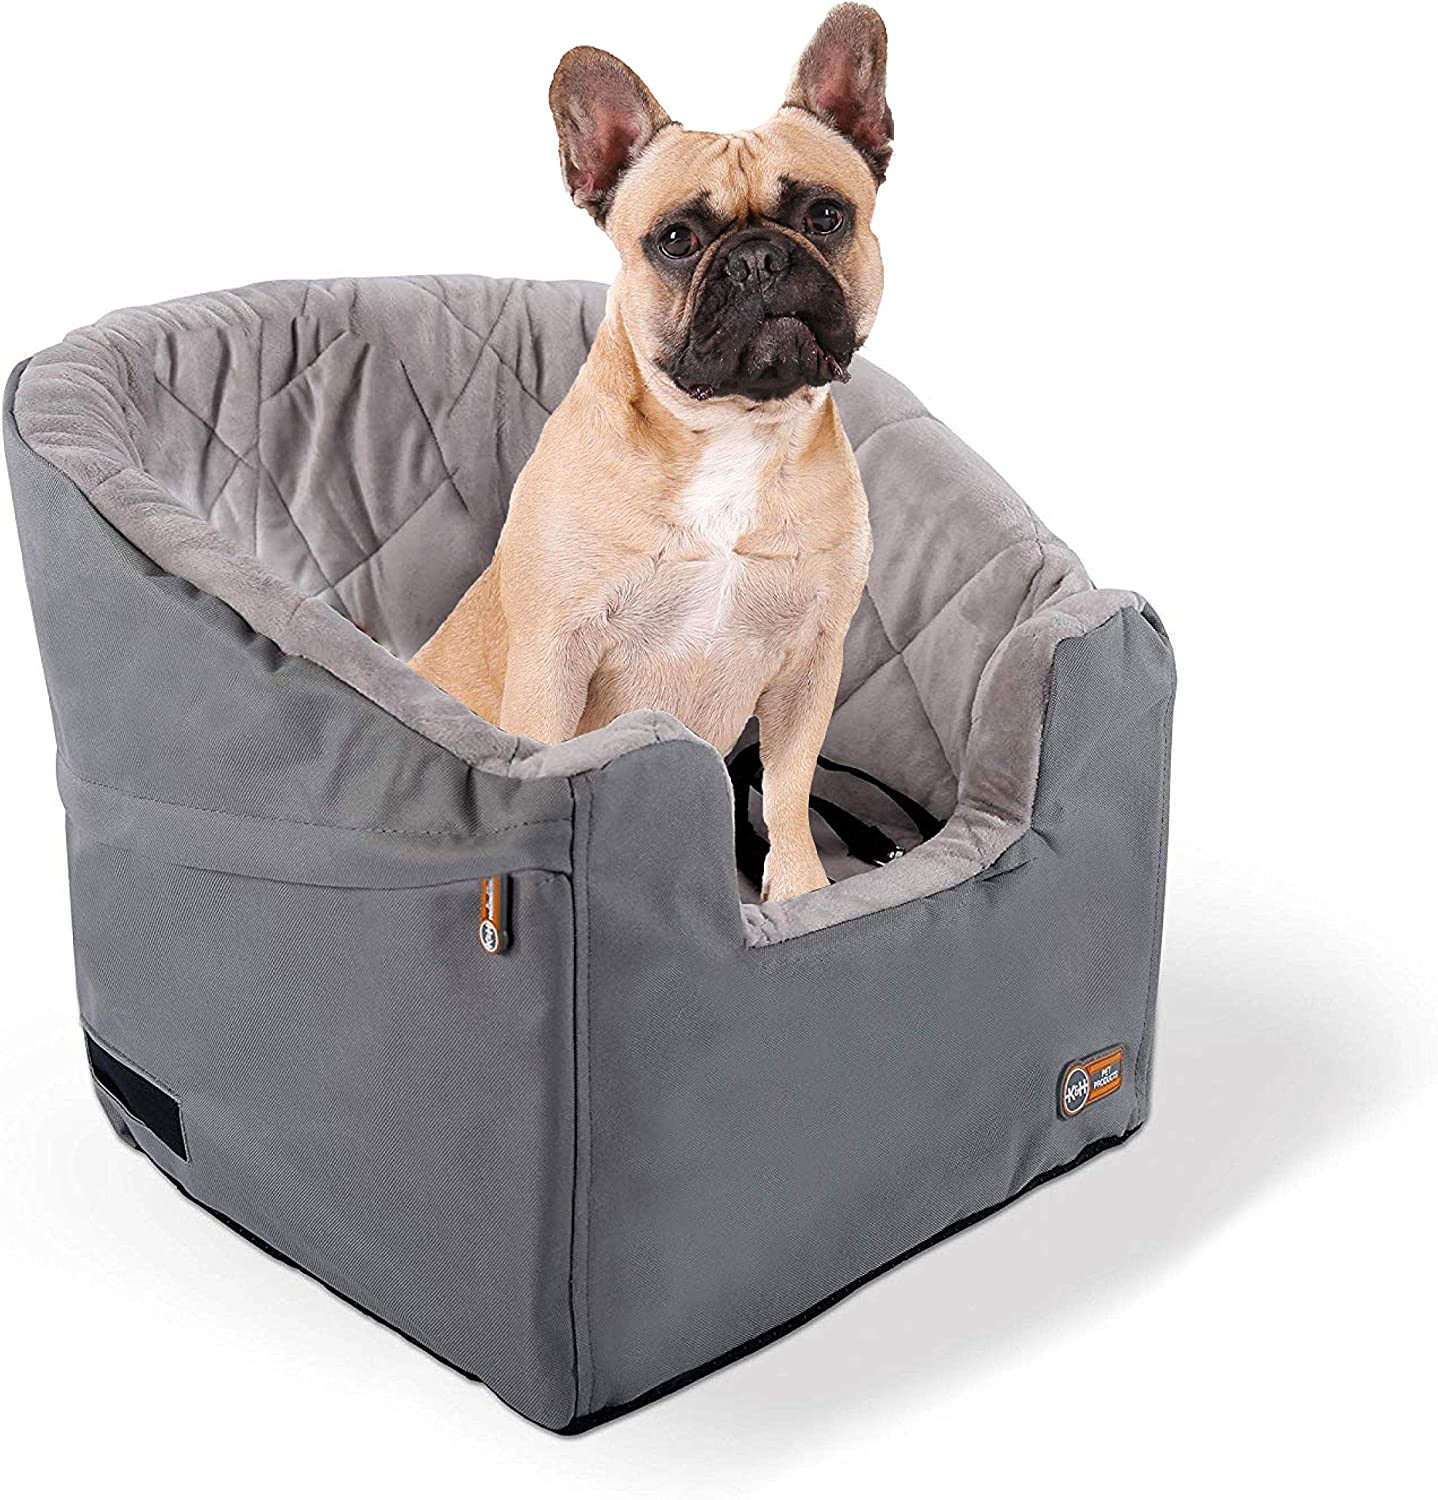 KH Pet Ranking TOP9 Rapid rise Products Bucket Elevated - Seat Booster